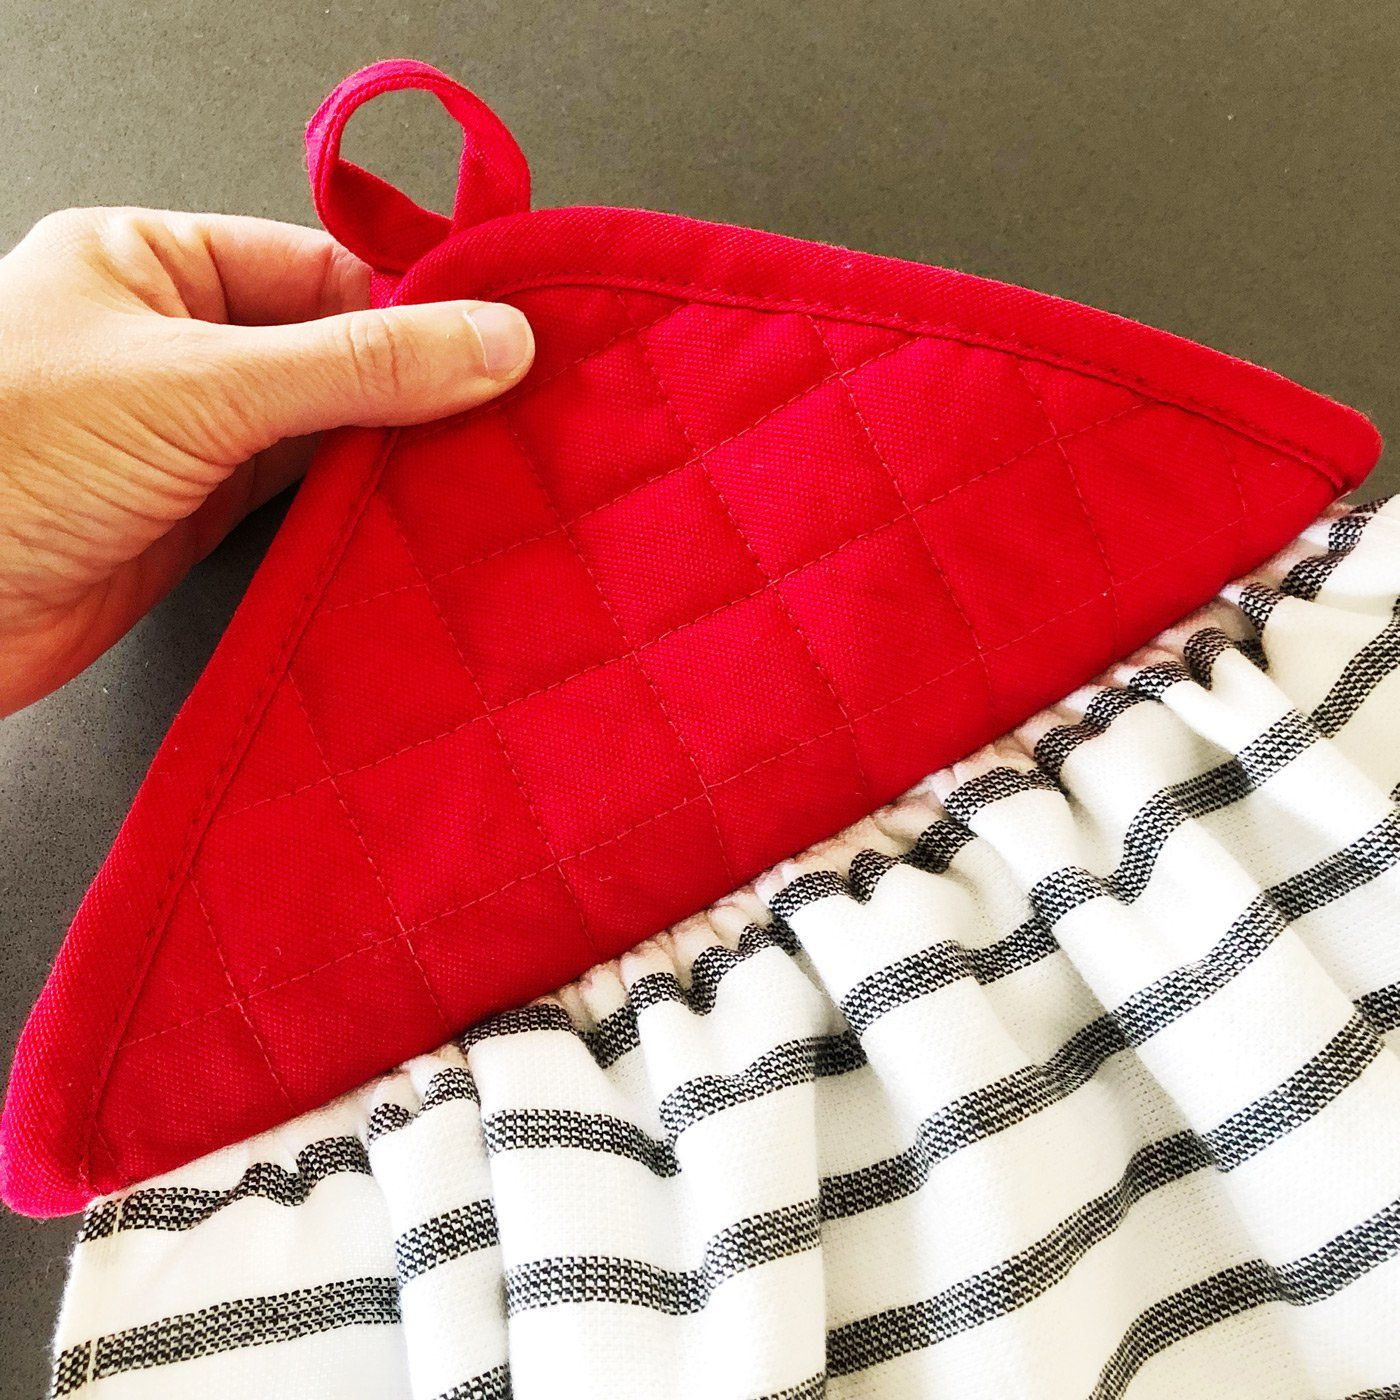 title | How To Make Hanging Kitchen Towels